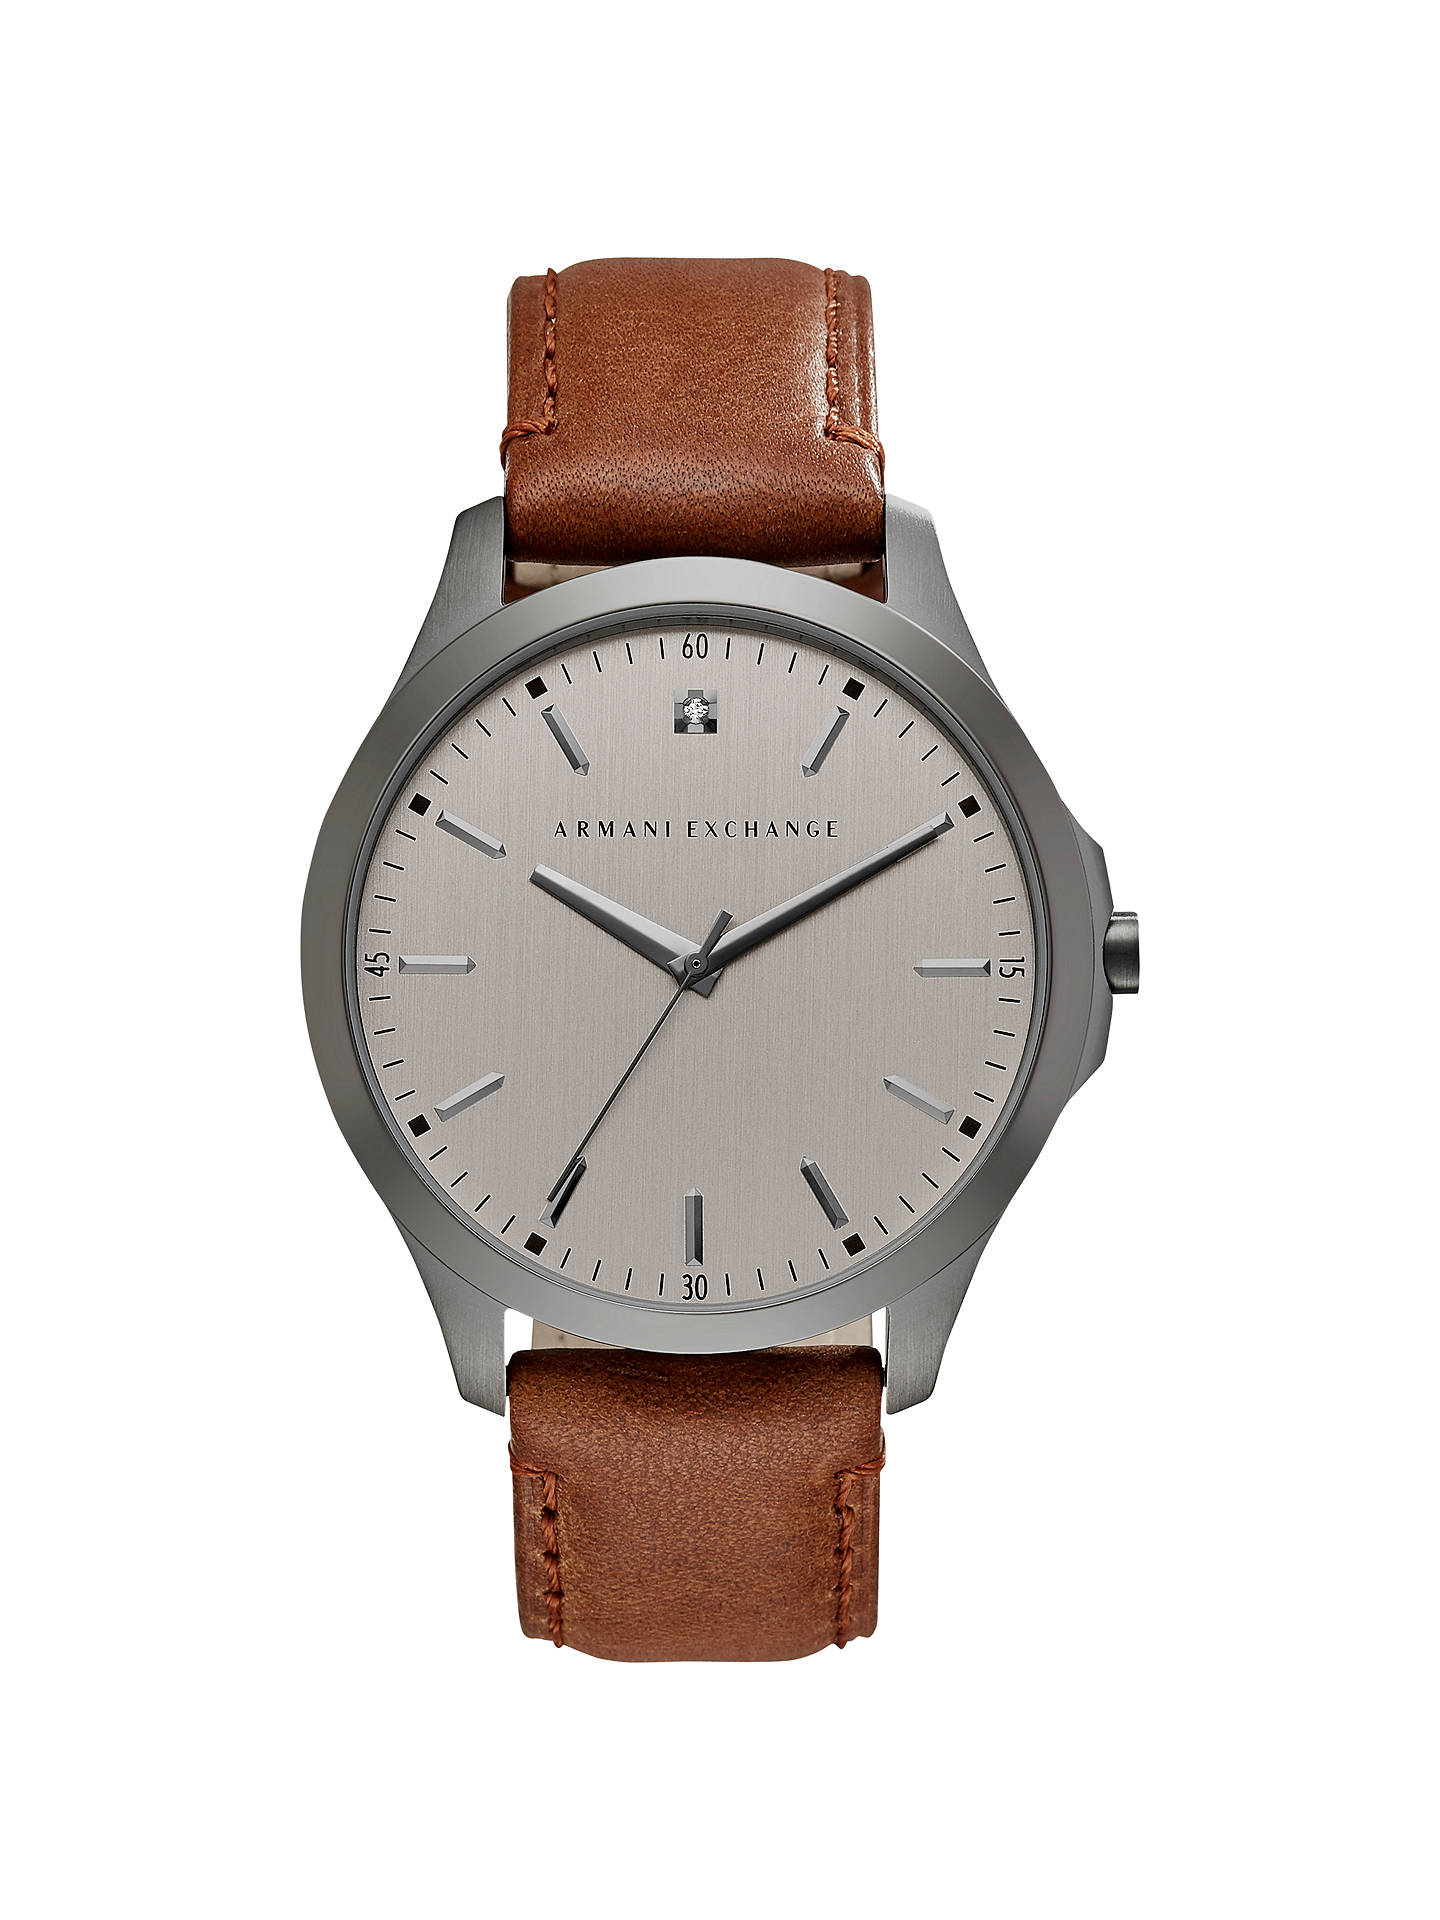 BuyArmani Exchange AX2195 Men's Leather Strap Watch, Brown/Gunmetal Online at johnlewis.com